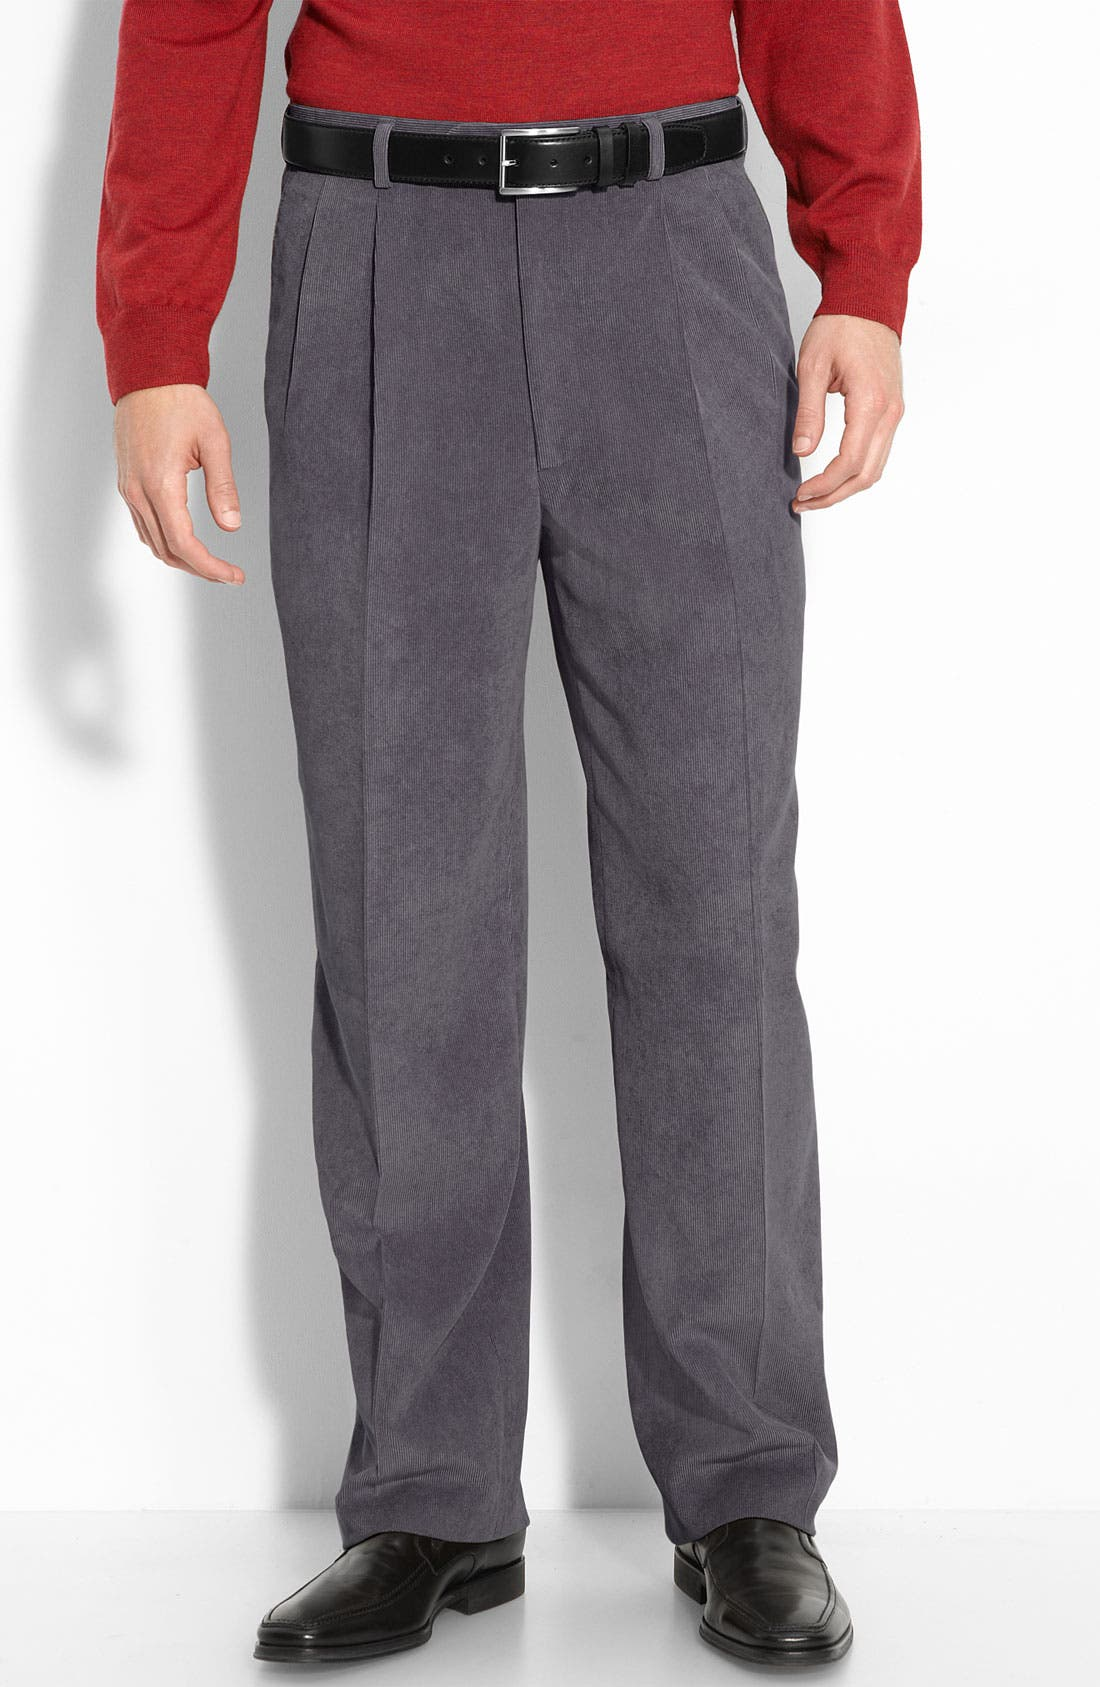 Linea Naturale 'Updated Micro-Aire' Pleated Corduroy Pants | Nordstrom